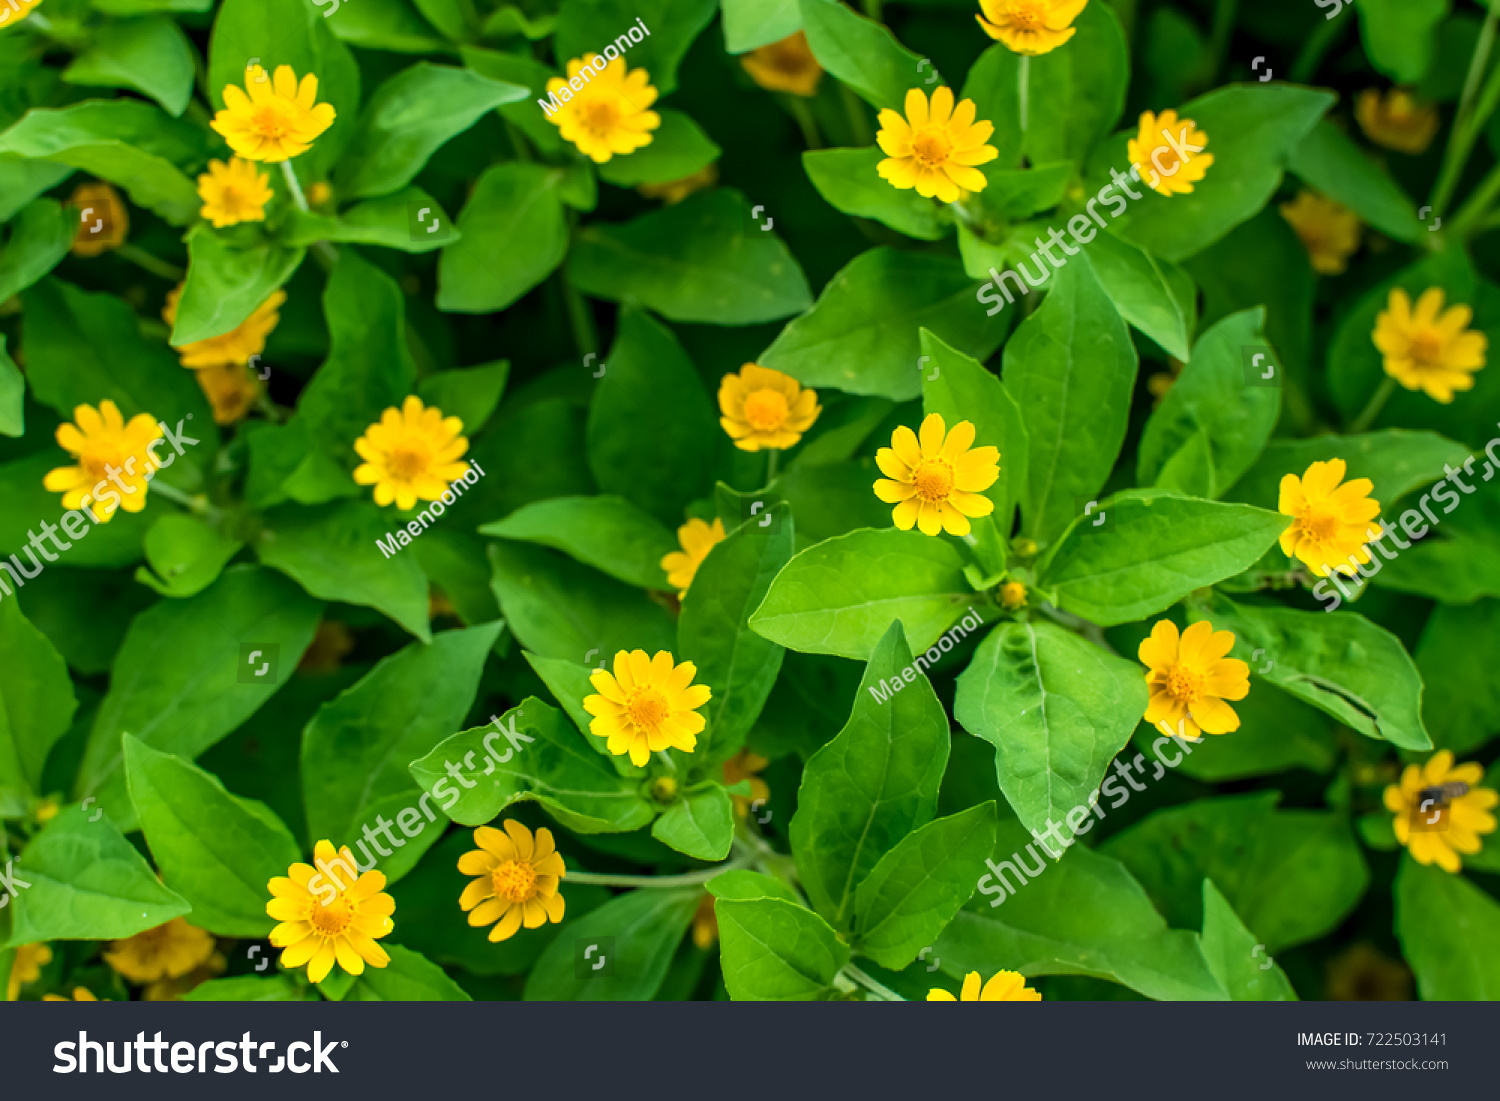 Singapore Daisy Cute Flower Group Yellow Stock Photo Download Now